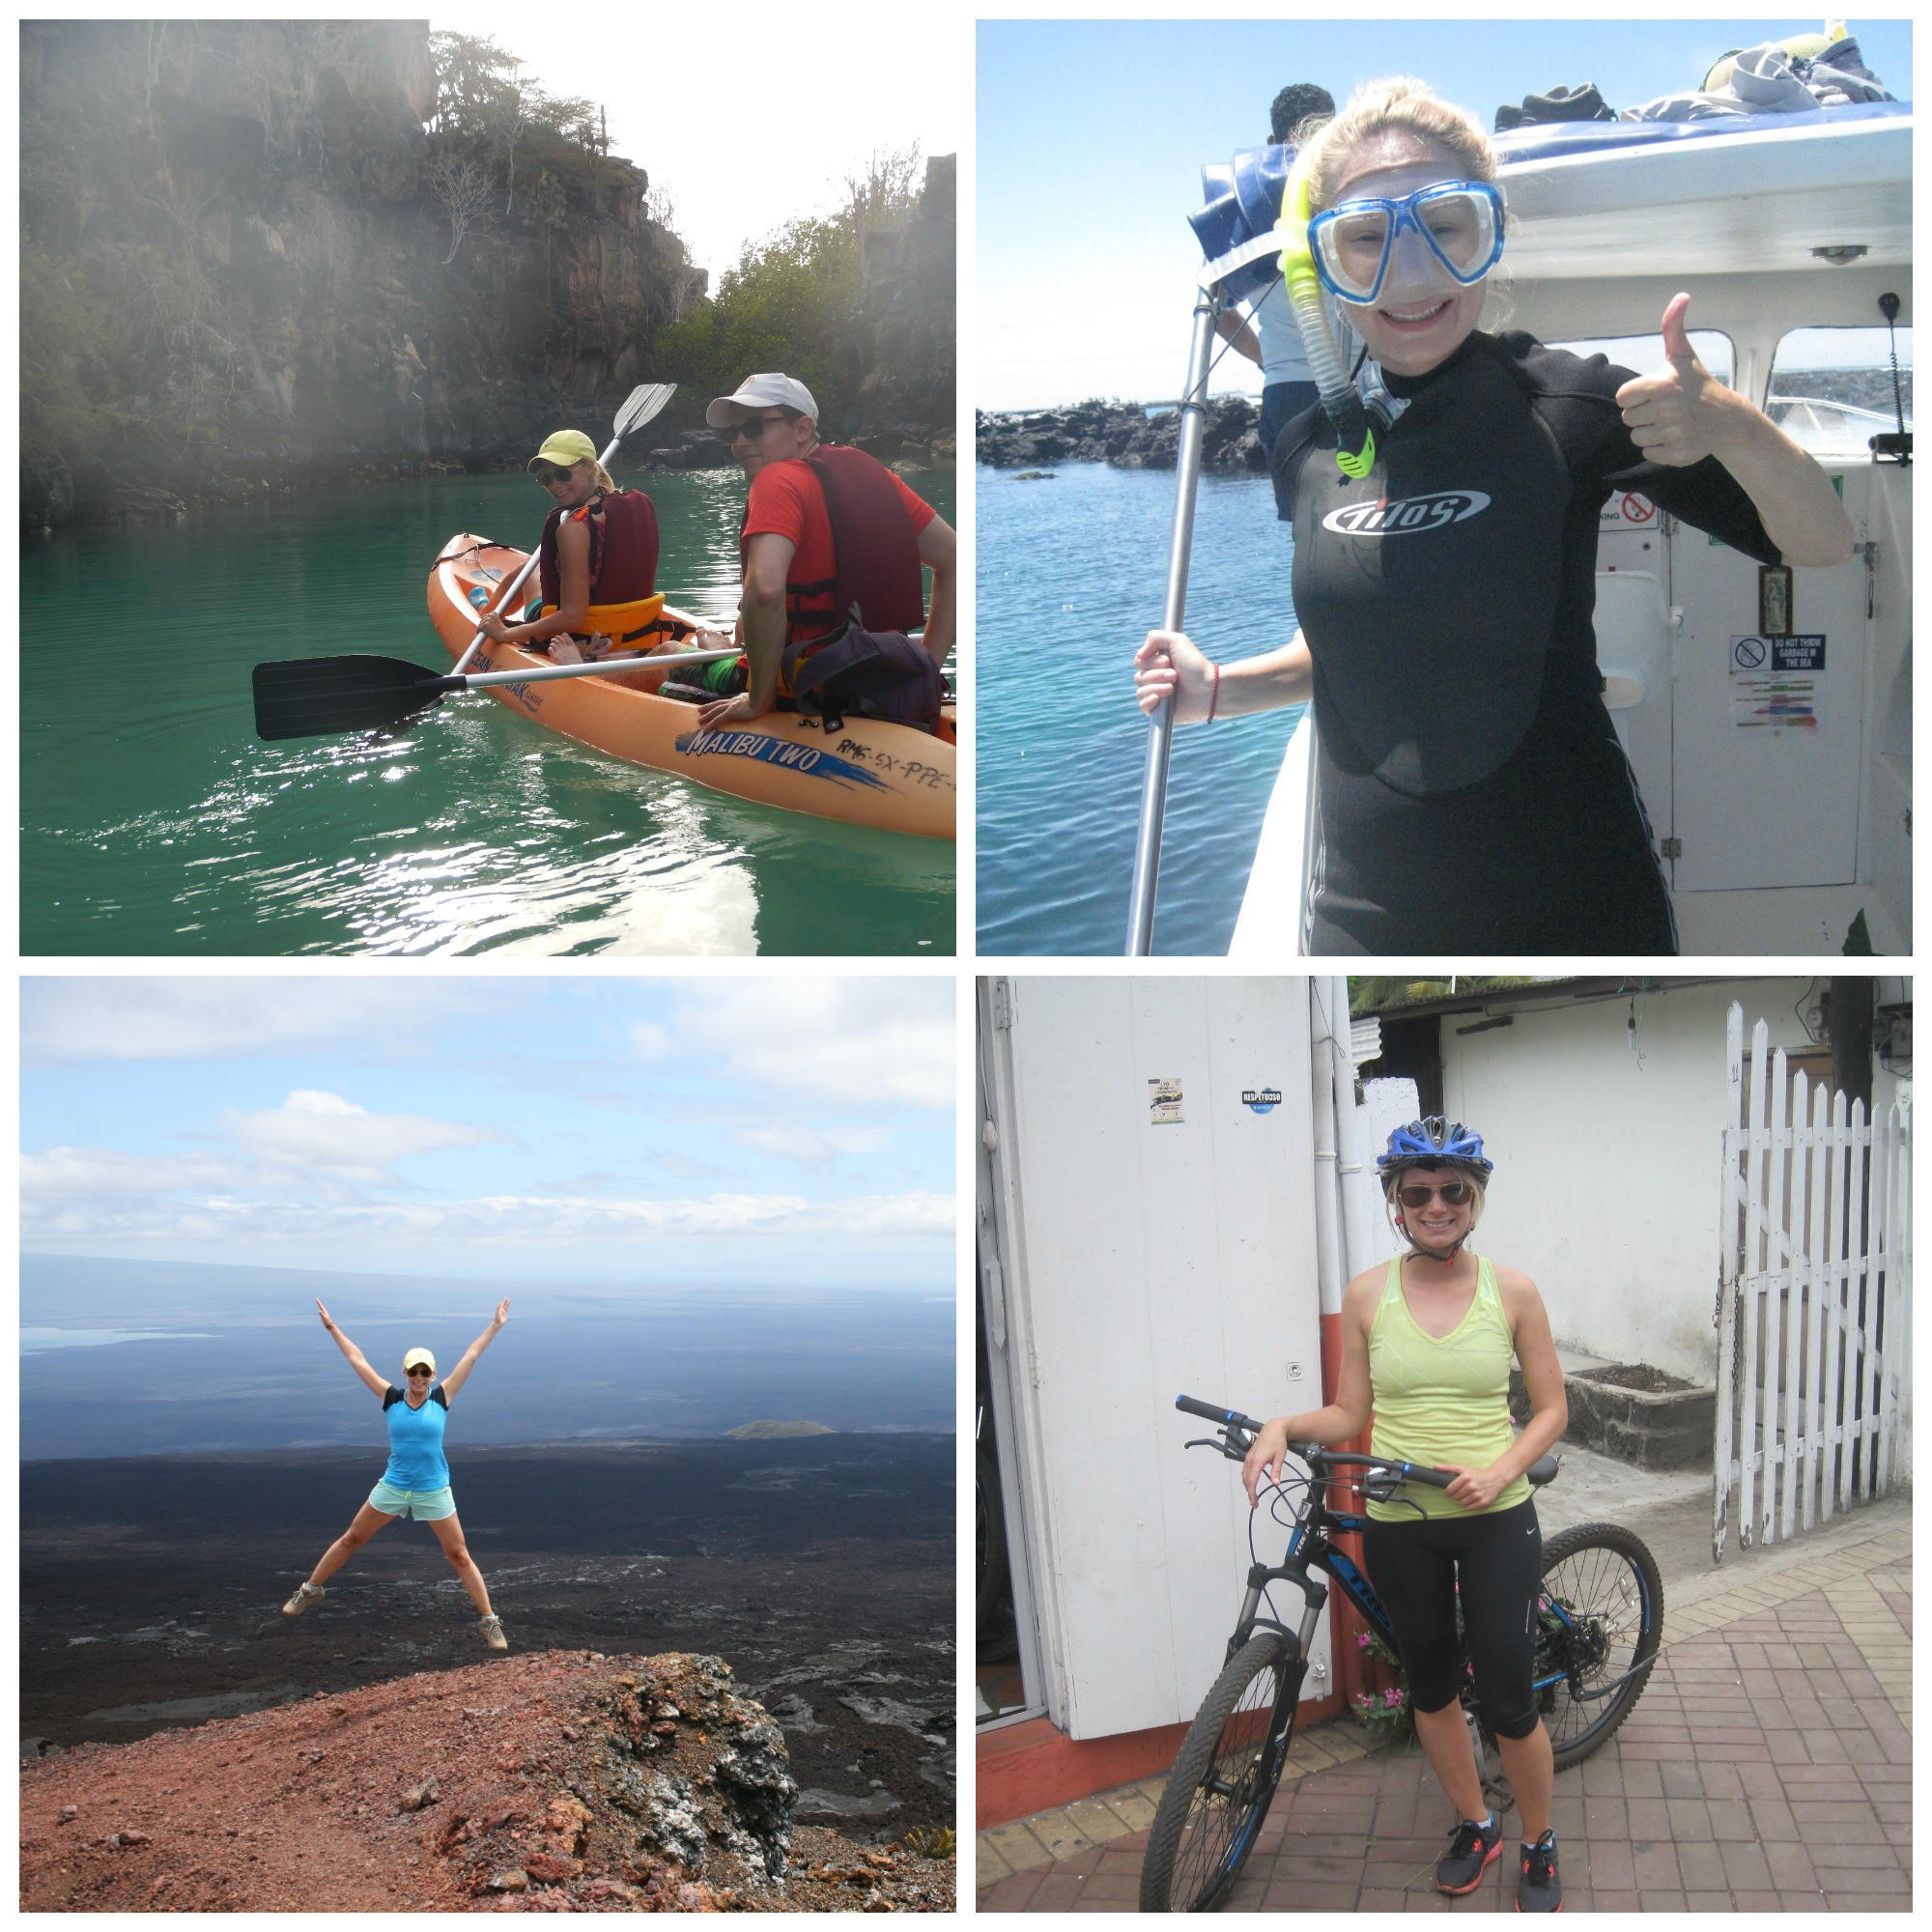 Kayaking, snorkelling, hiking and biking. All fine forms of cross training. And even better when you can do them in the Galapagos Islands!